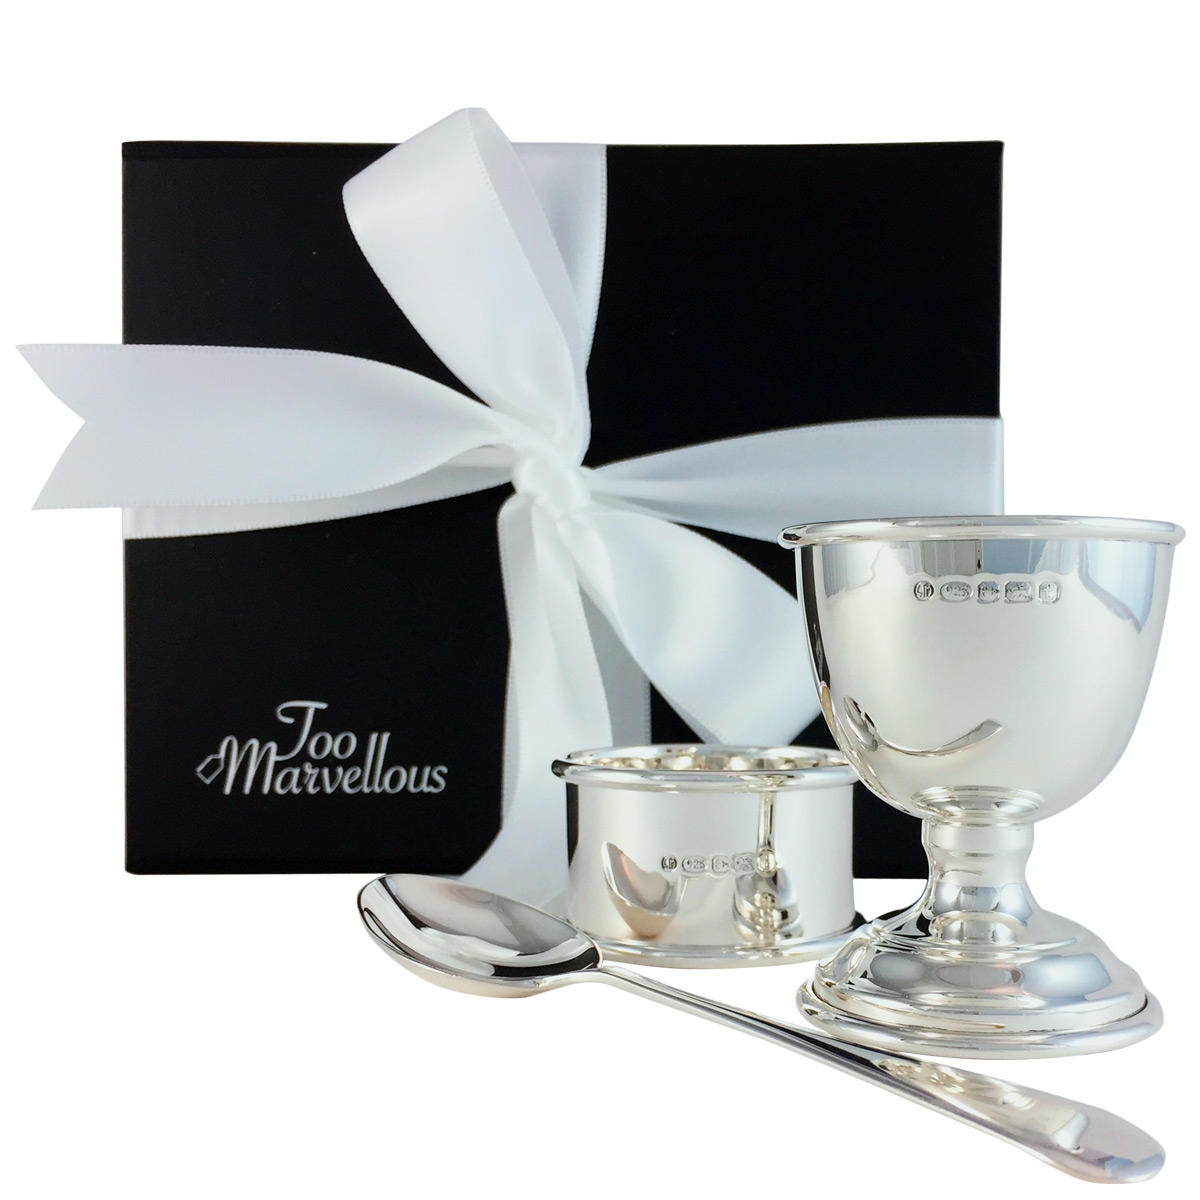 dedca84bed1f Sterling Silver Three Piece Egg Cup, Spoon and Napkin Ring Gift Set